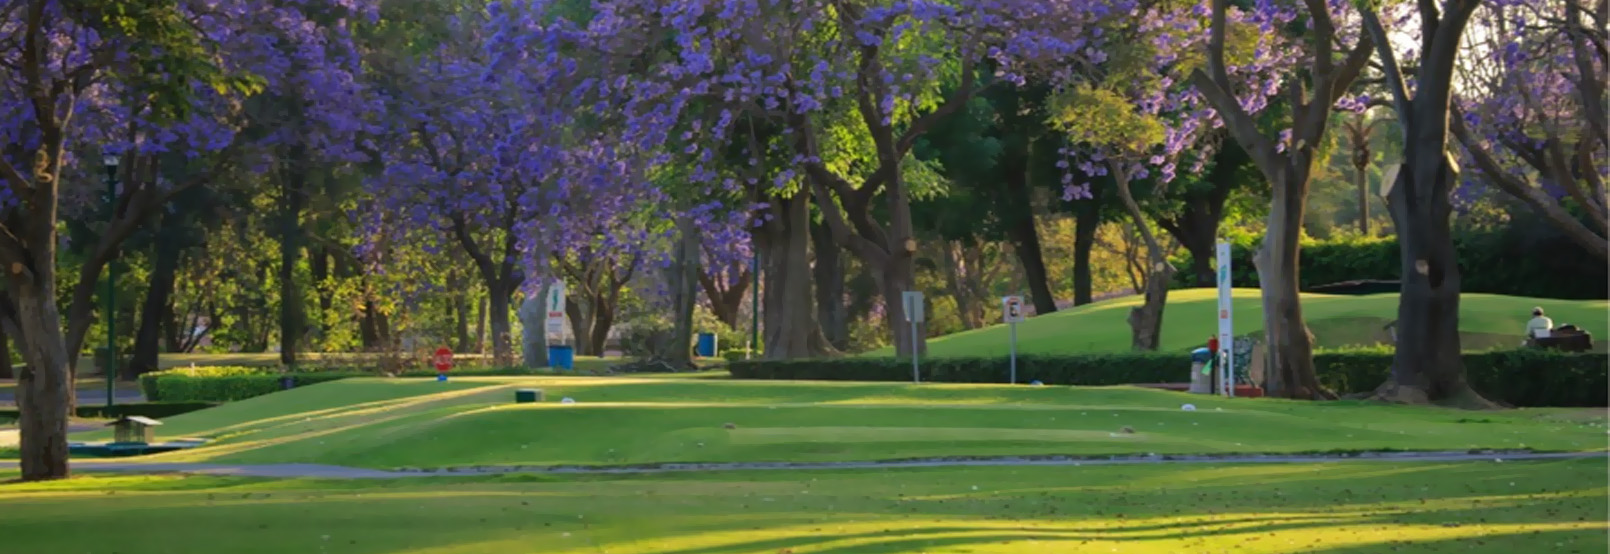 Club de Golf Santa Anita